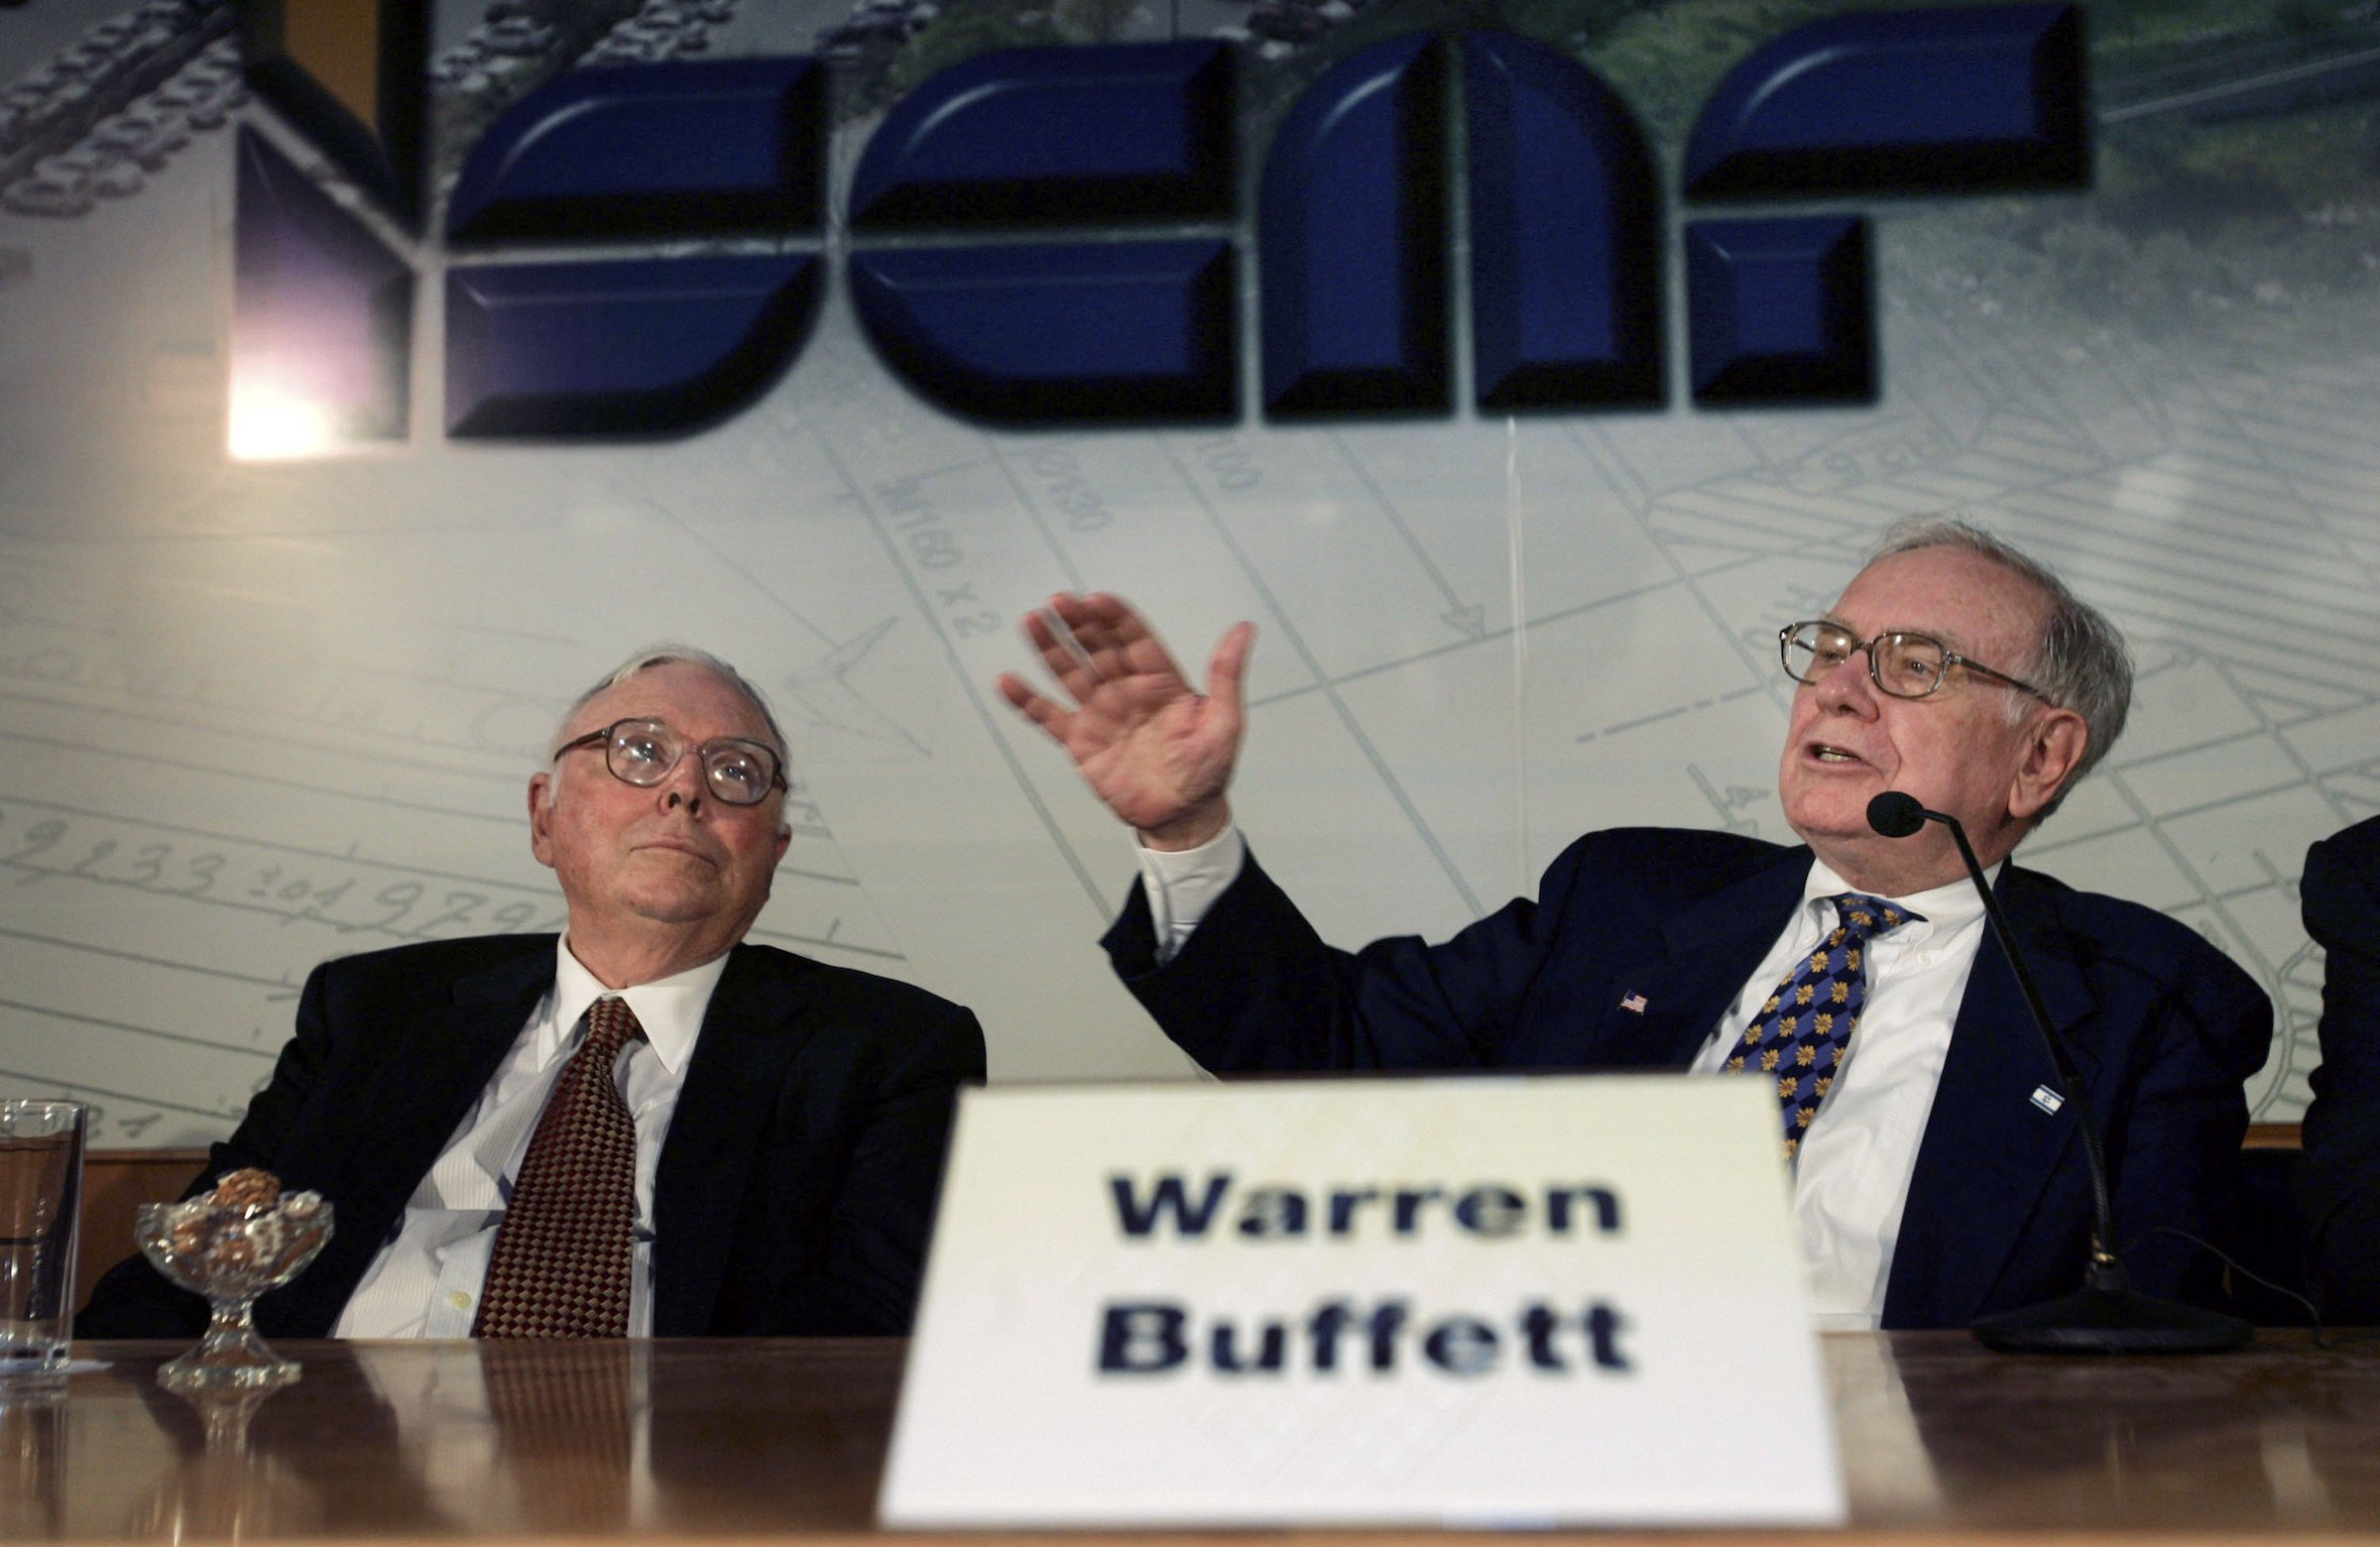 Buffett appears to fault Trump, laments M&A dearth in Berkshire shareholder letter